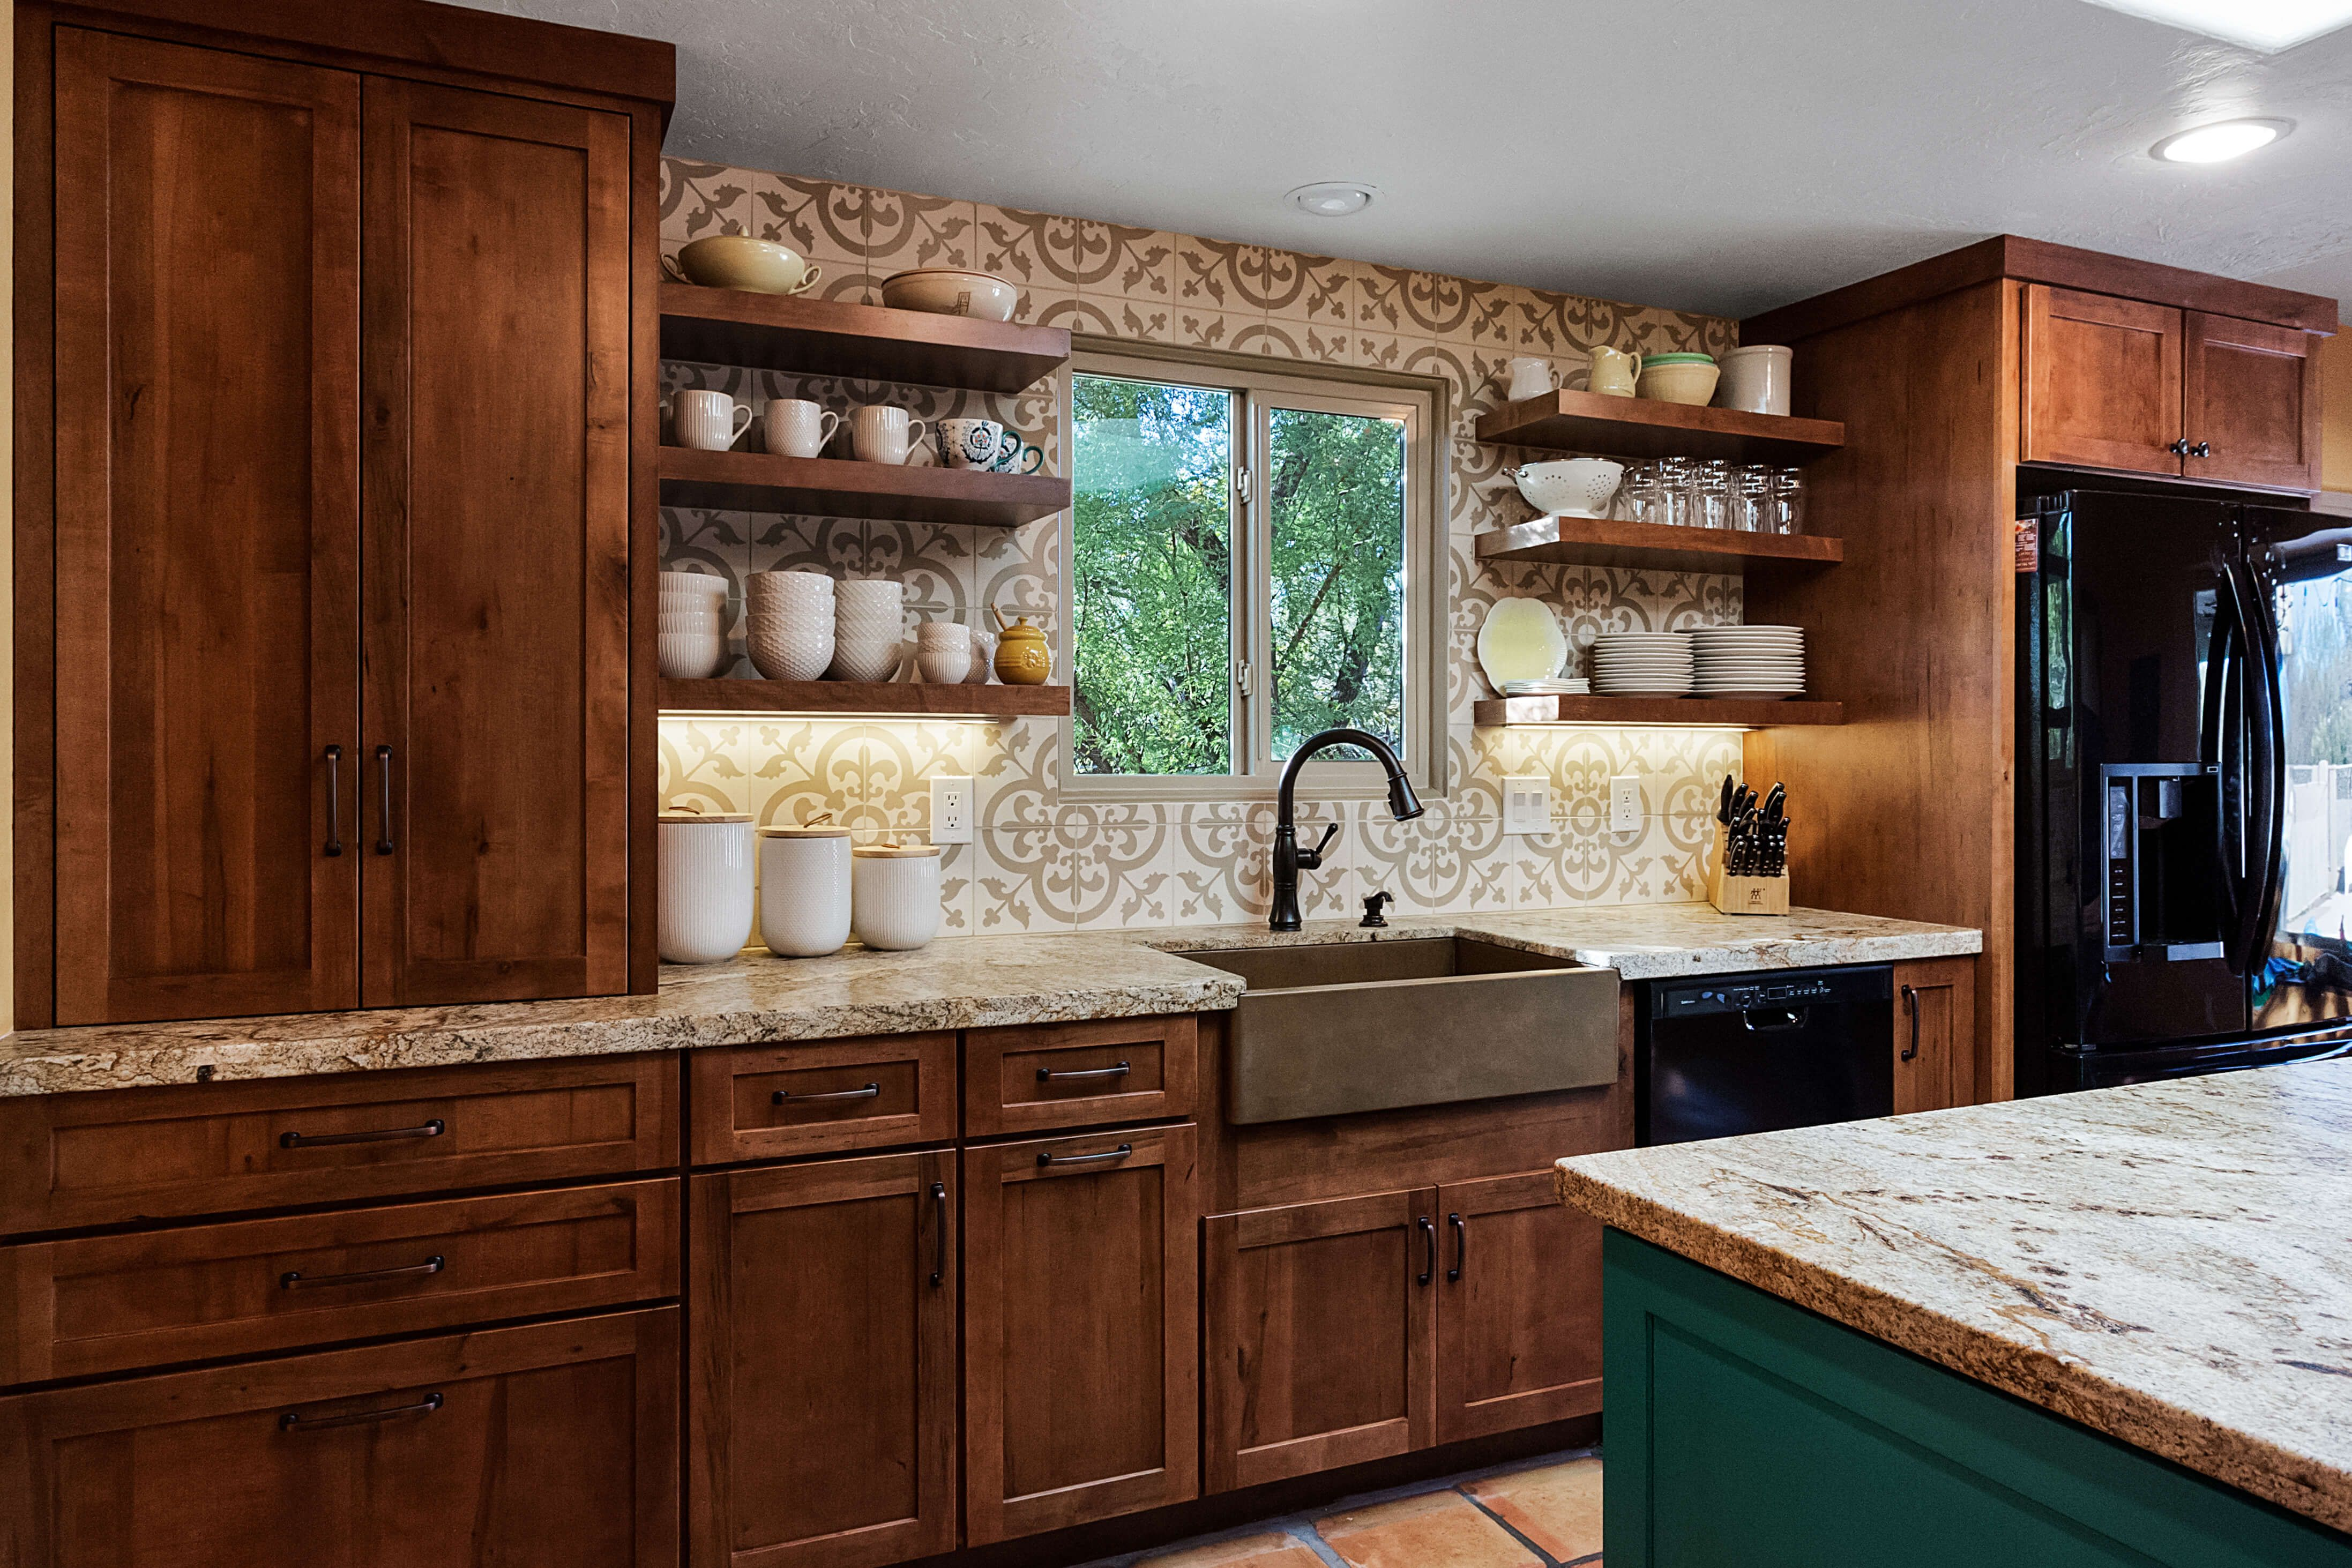 Oro Valley Kitchen With A Turquoise Island Designer Matt Yaney Southwest Kitchen Southwest Kitchen Kitchen Cabinet Styles Southwest Home Decor